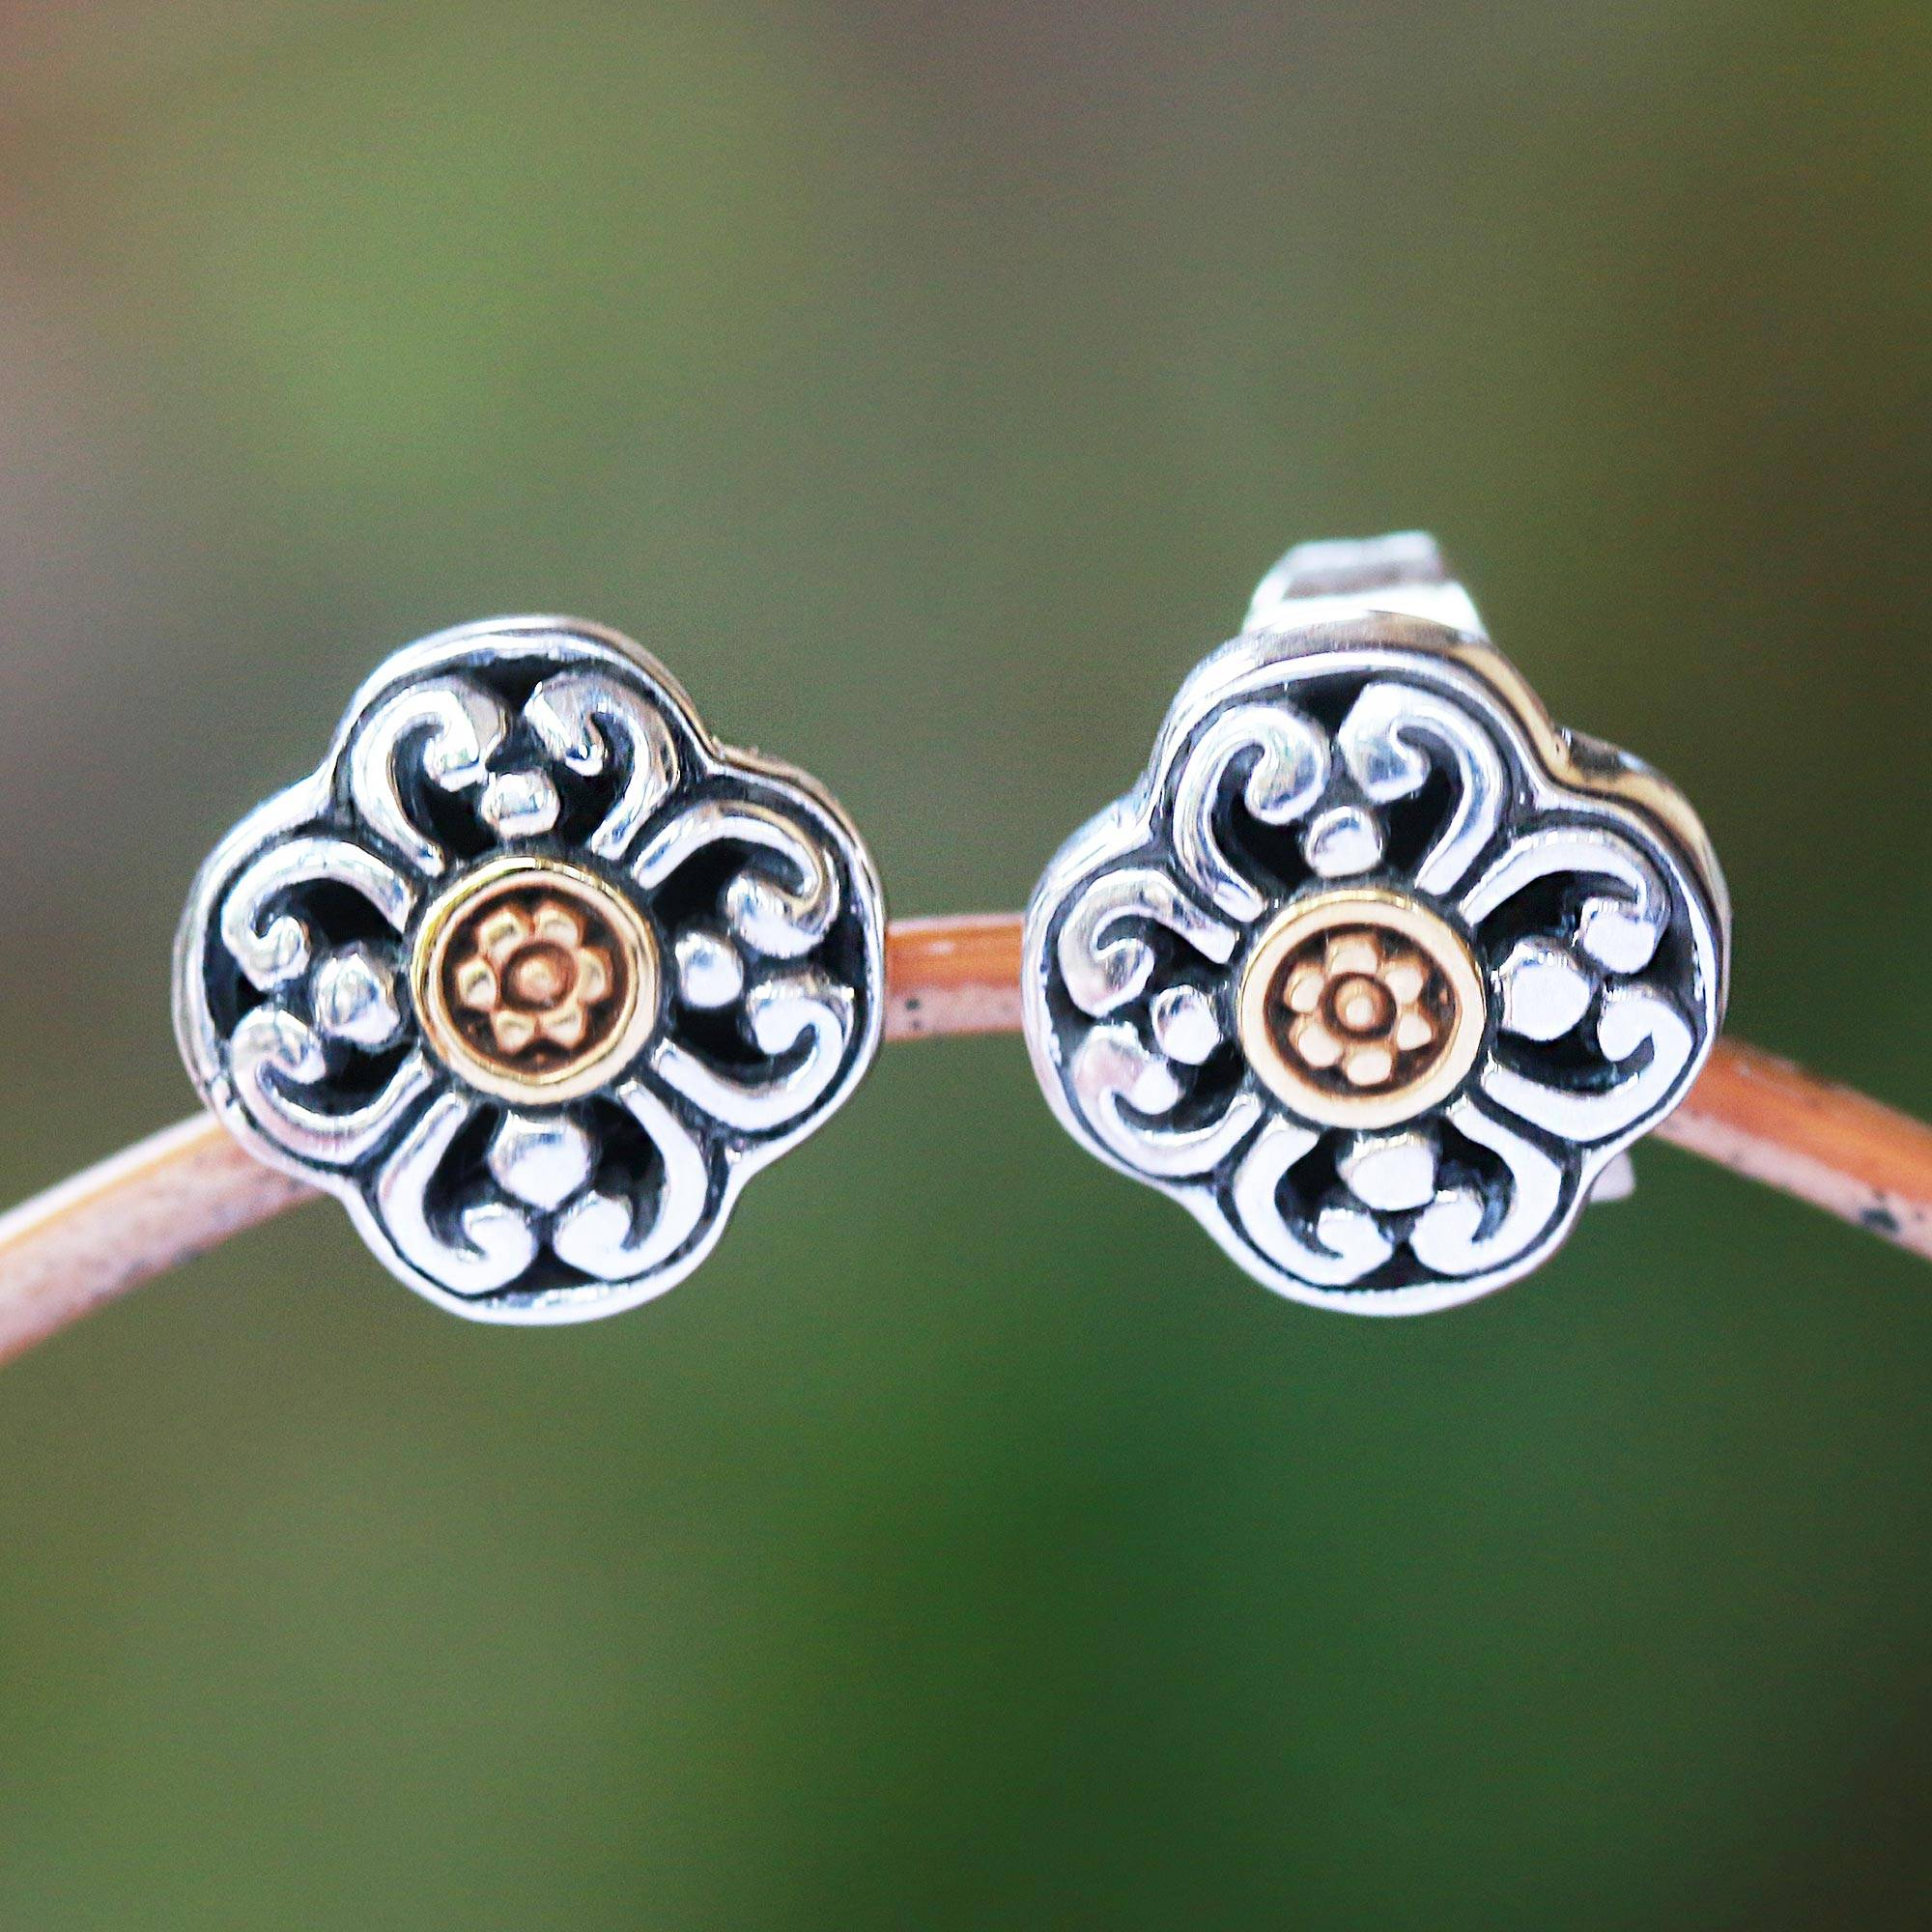 silver plating with gold Floreal earrings with circles